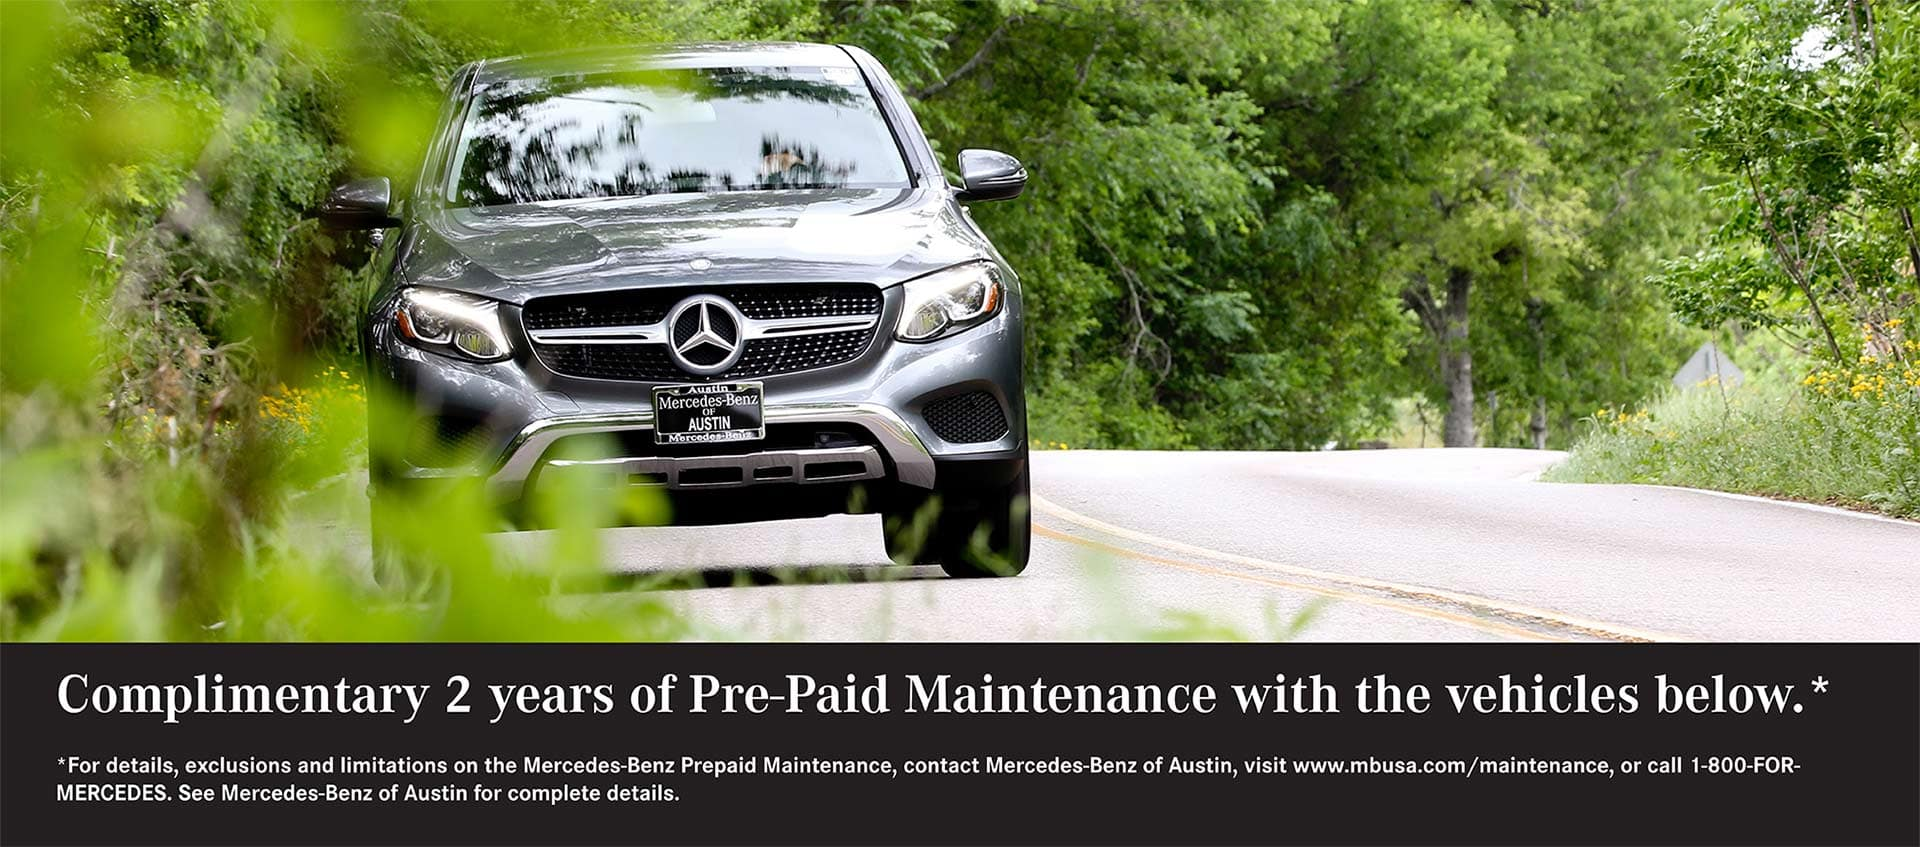 New mercedes benz for sale in austin tx autos post for Mercedes benz of austin austin tx